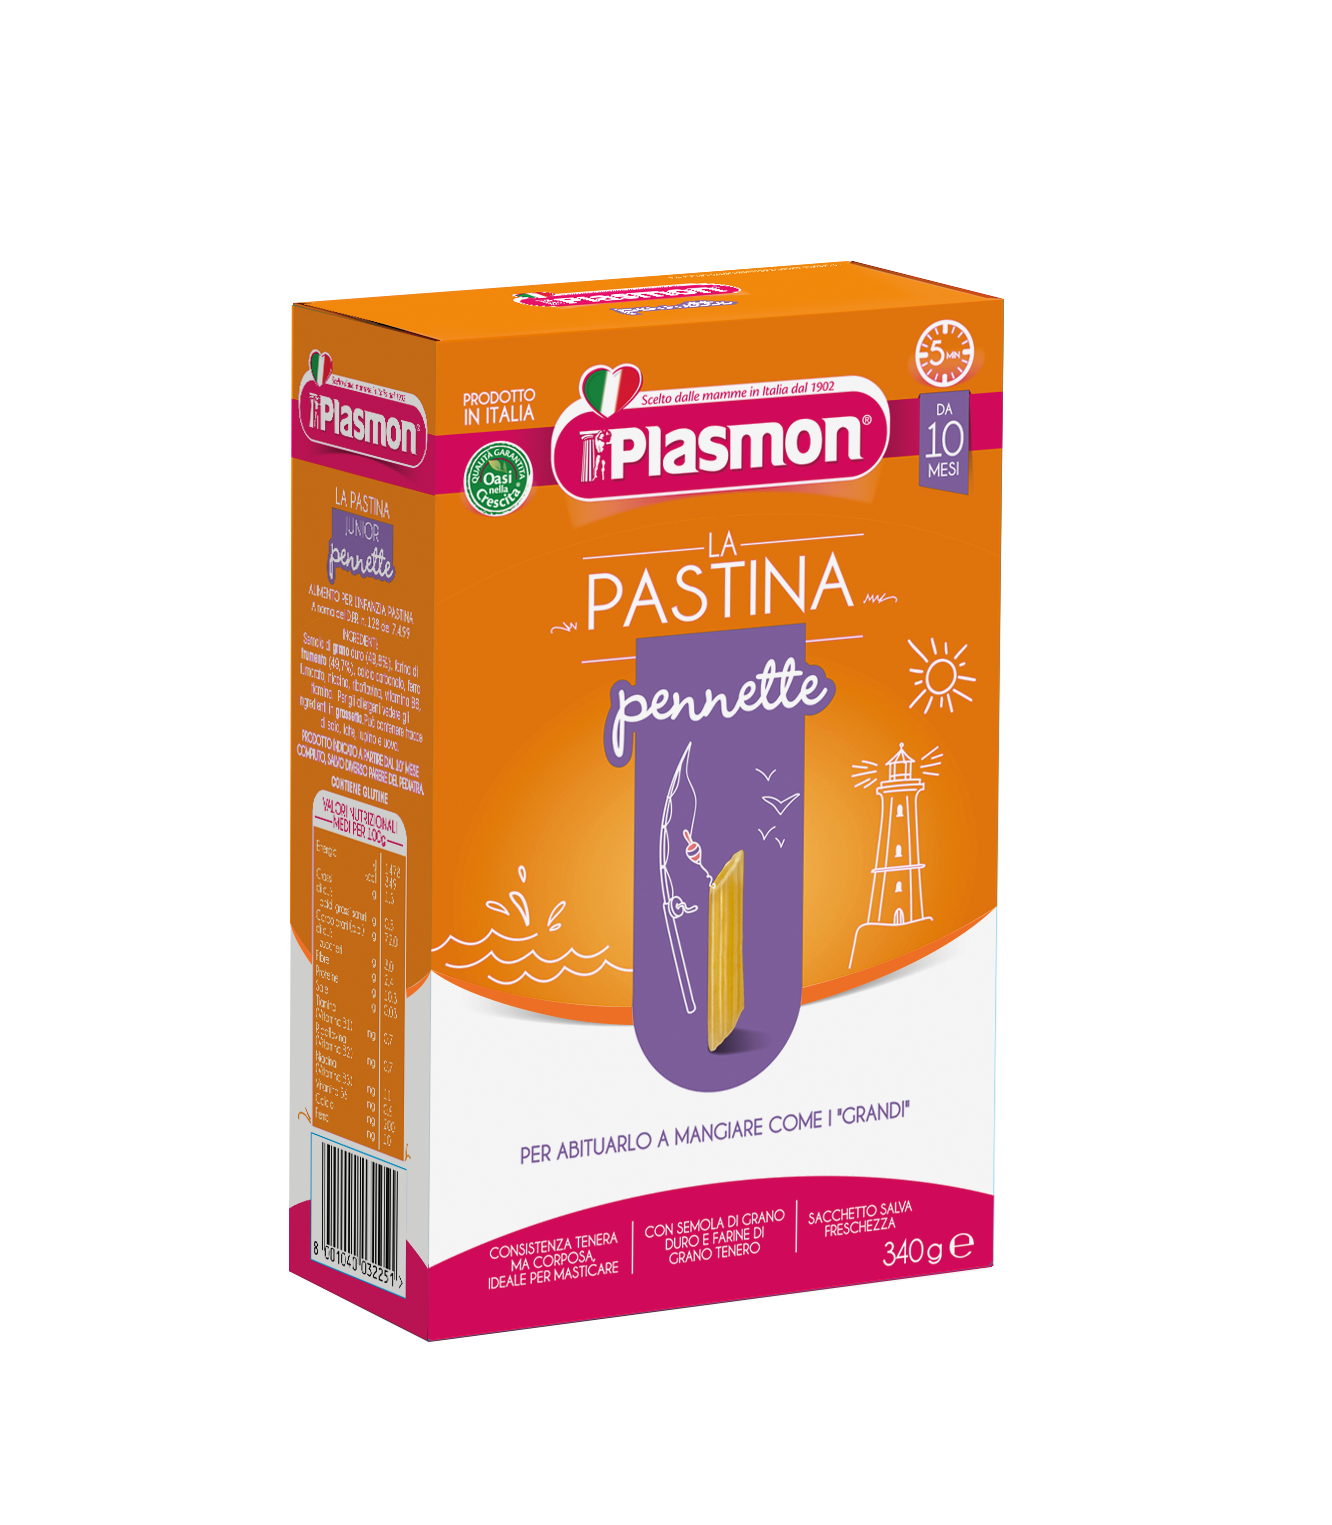 Pastina Pennette